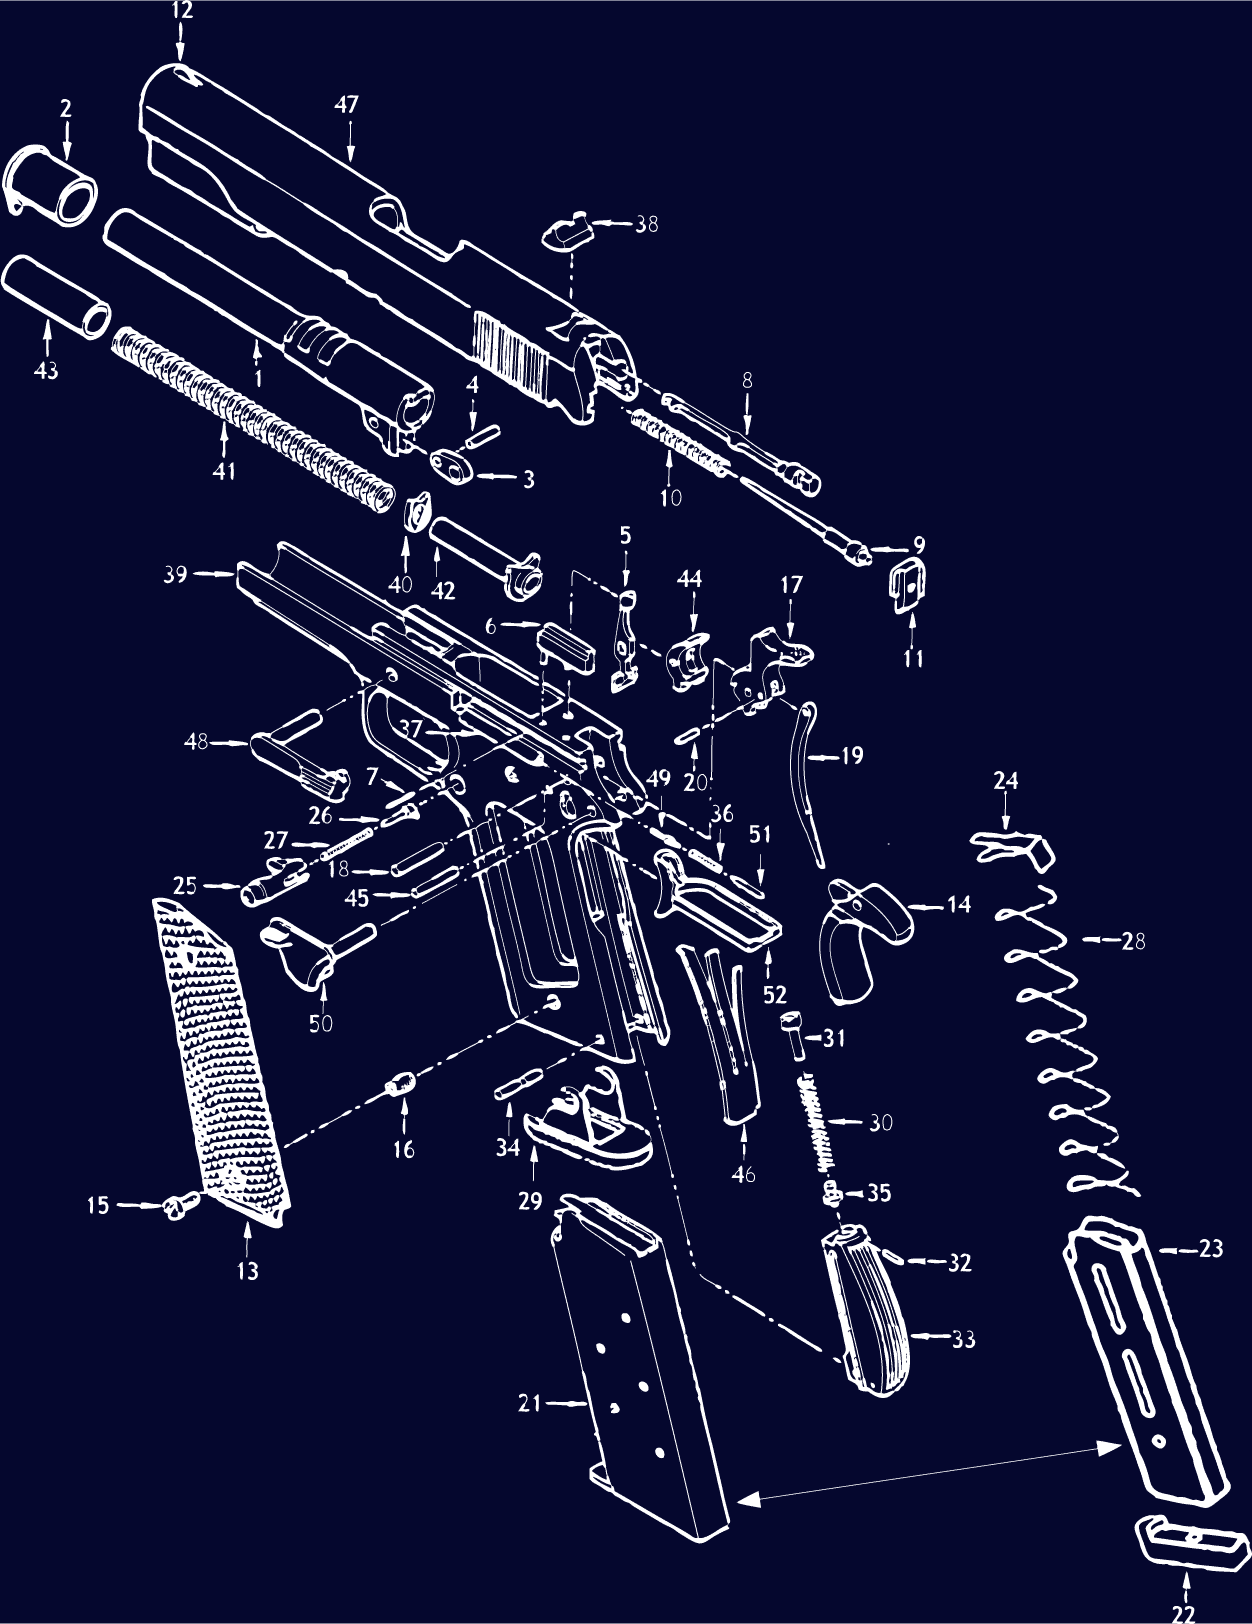 1911 Schematic - Gun Diagrams, Gun Parts | MidwayUSA